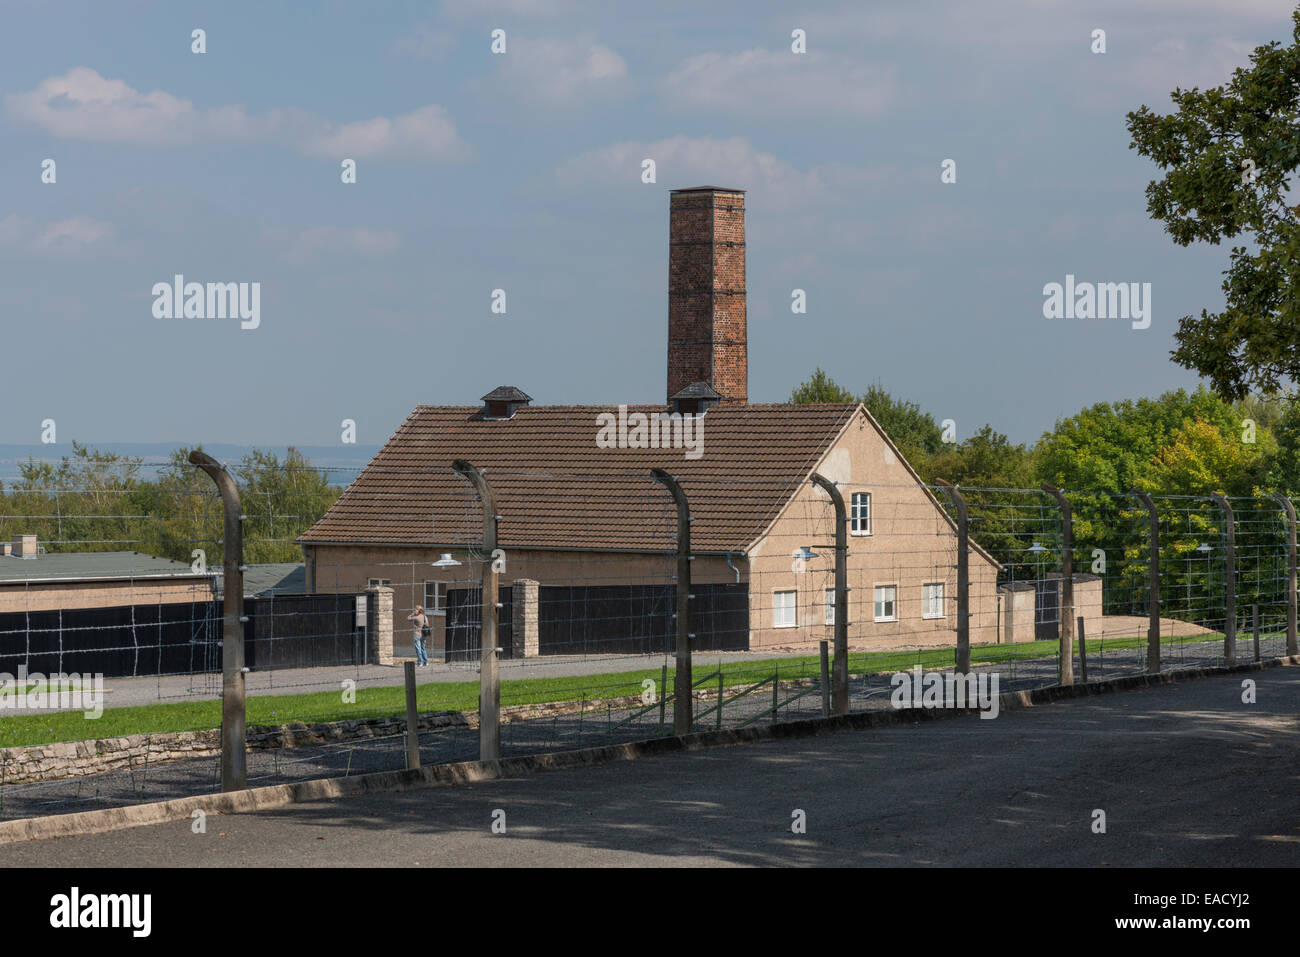 Crematorium and reconstructed fence, Buchenwald concentration camp, Weimar, Thuringia, Germany - Stock Image